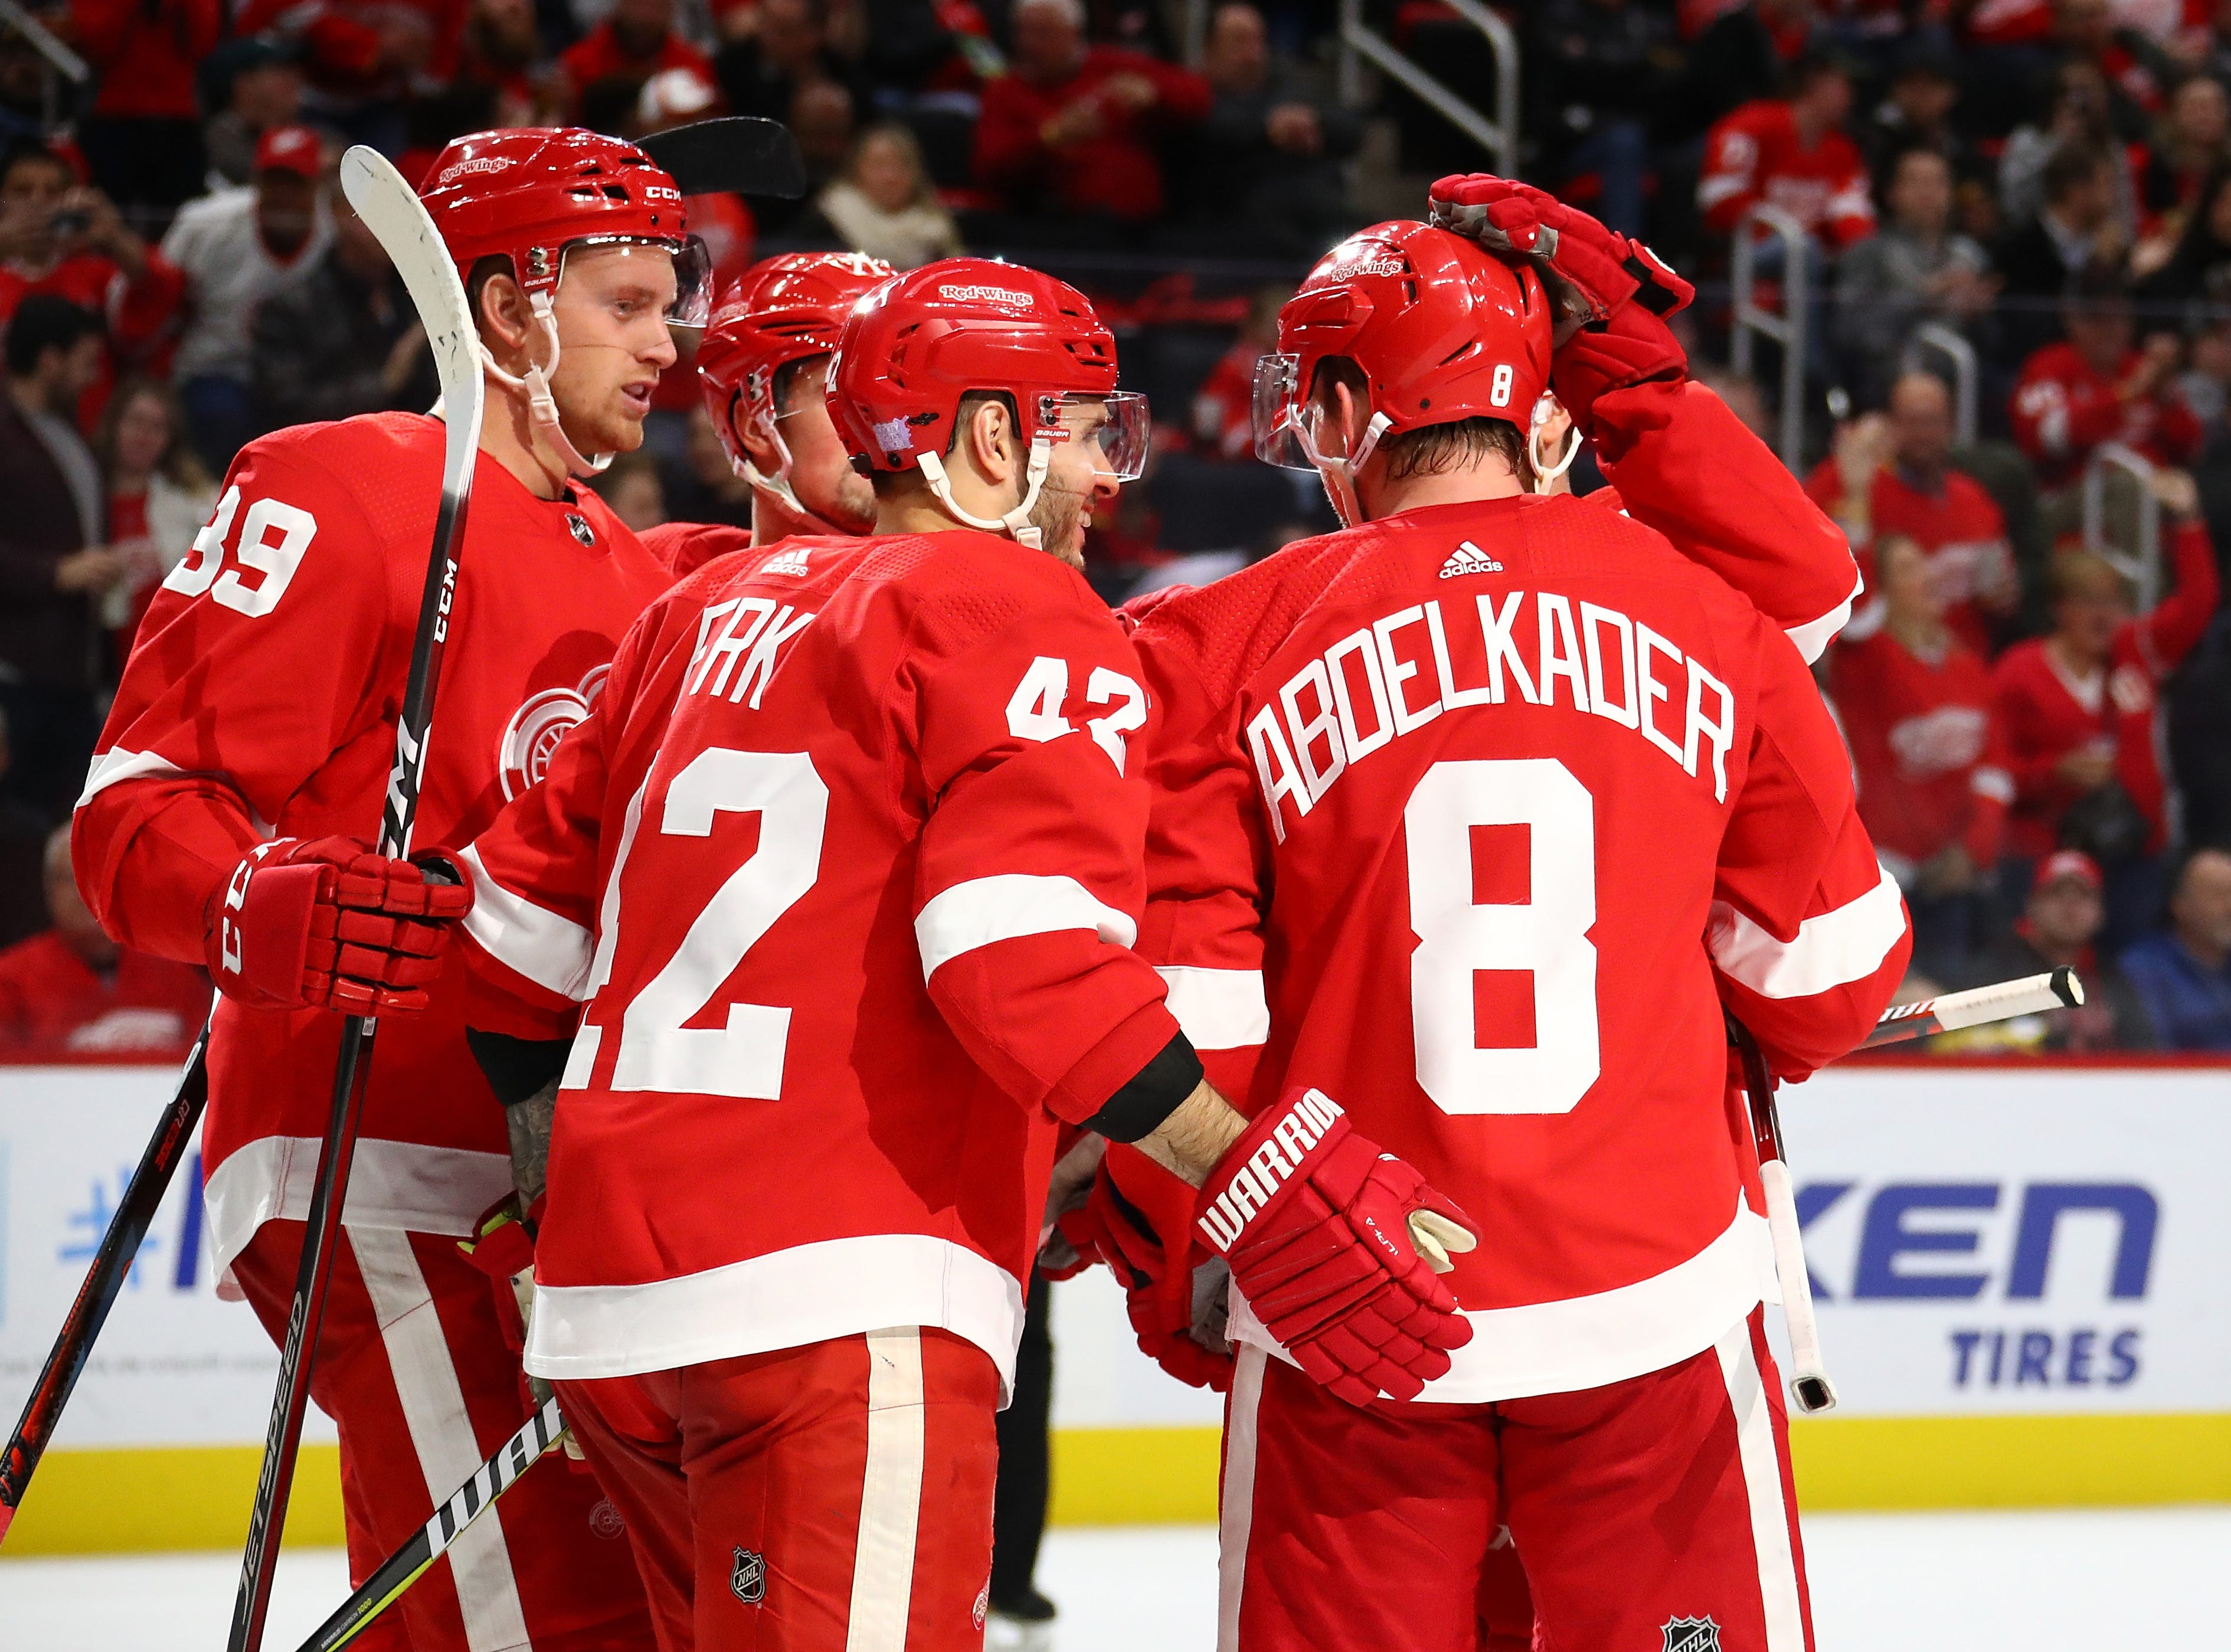 Justin Abdelkader (8) of the Detroit Red Wings celebrates his second period goal with teammates while playing the Vancouver Canucks at Little Caesars Arena.